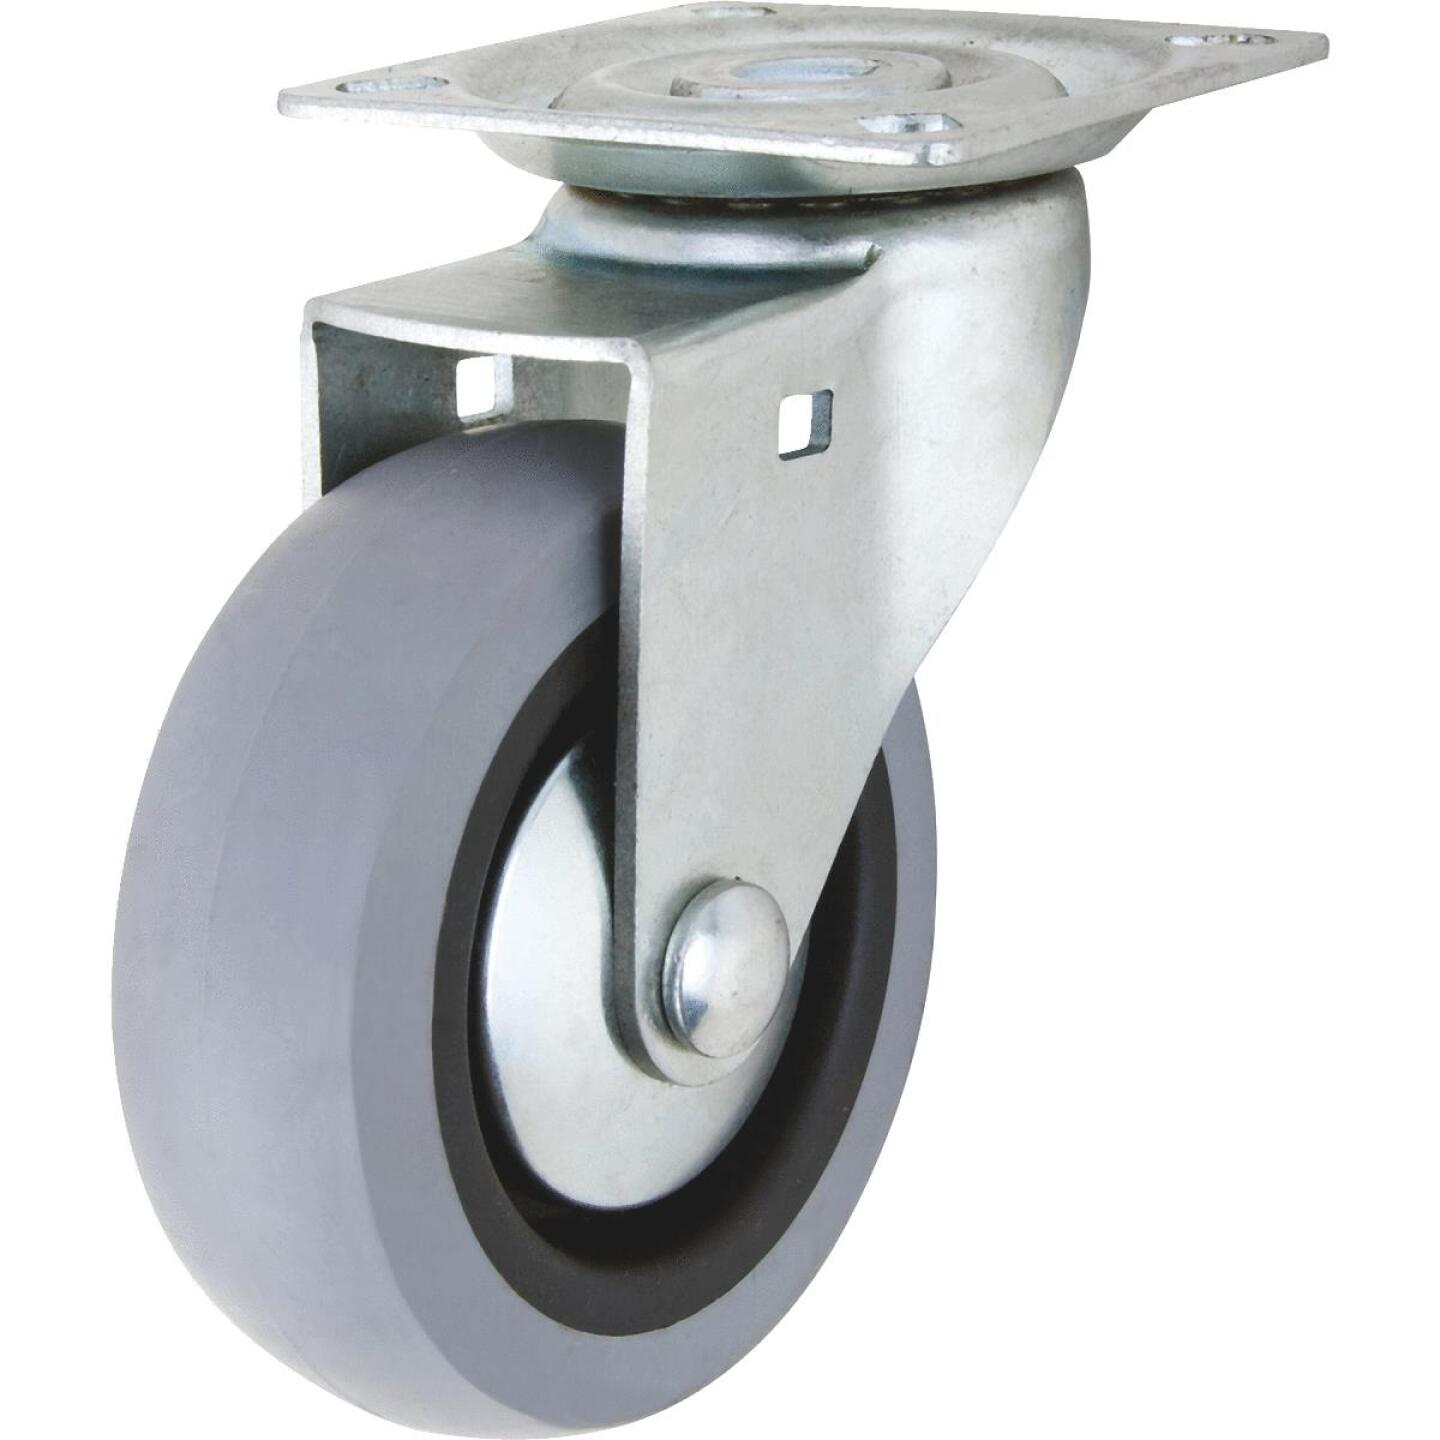 Shepherd 3 In. Thermoplastic Swivel Plate Caster Image 1